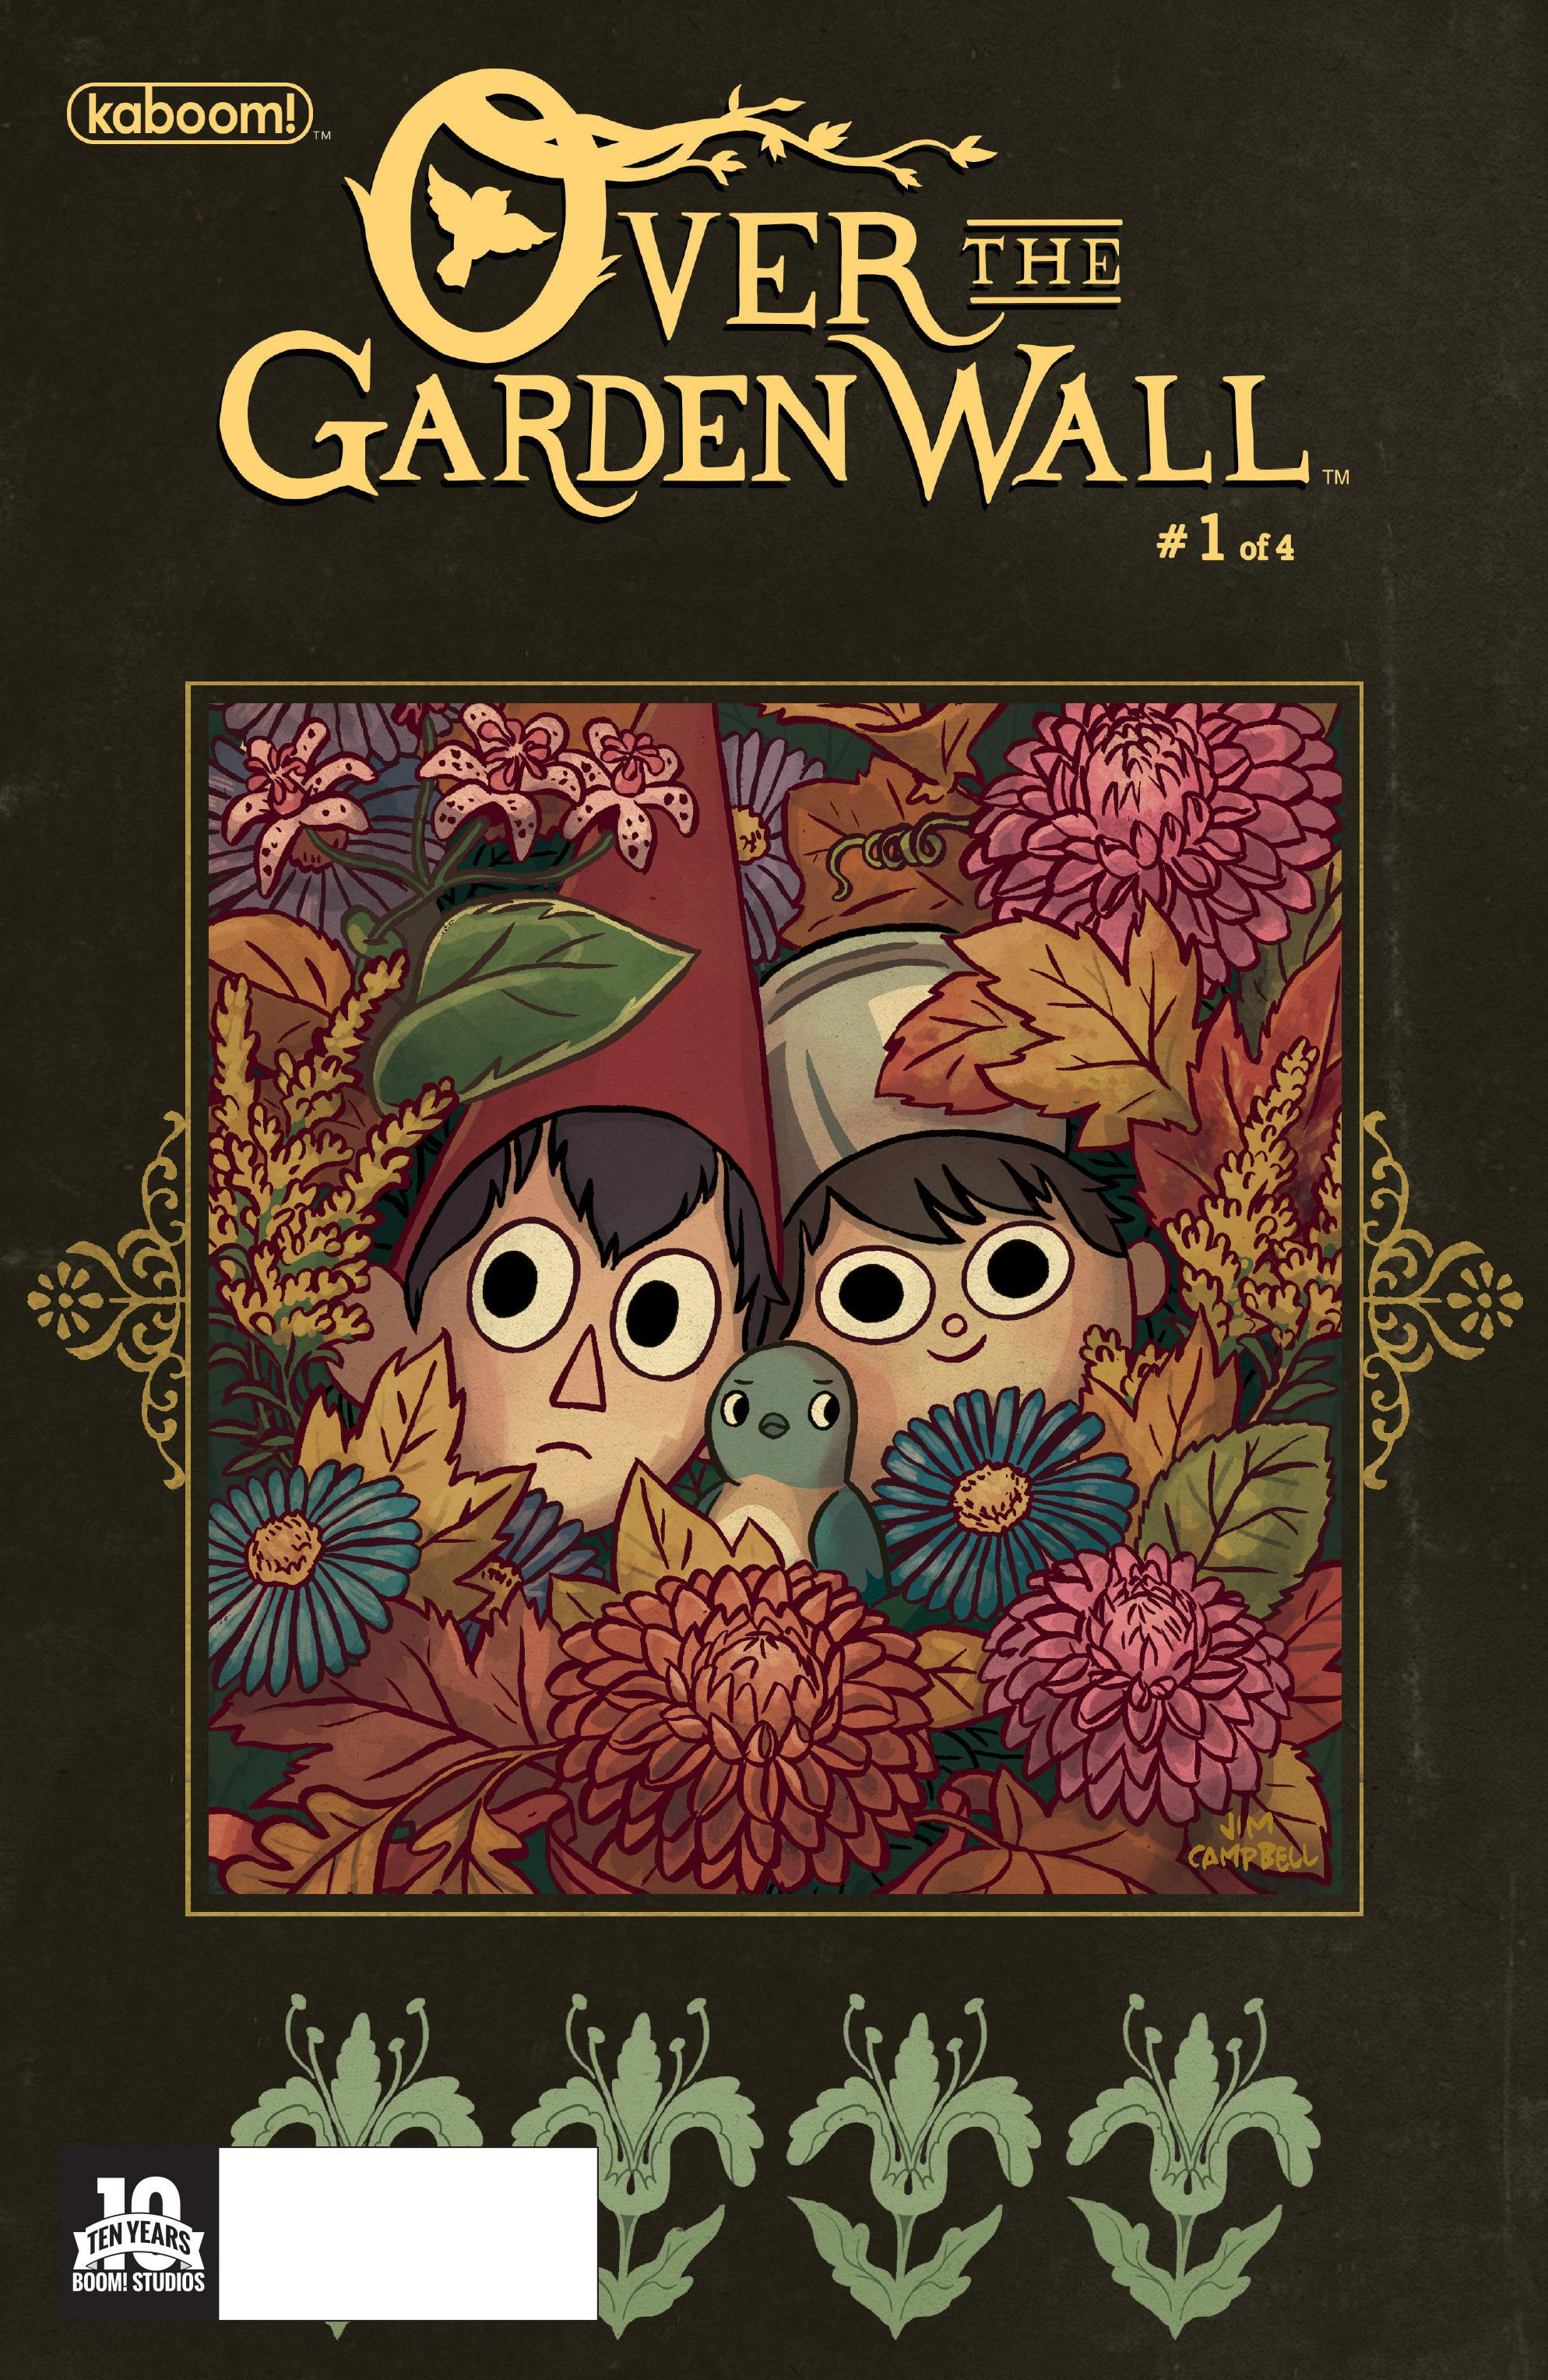 Issue 1 | Over the Garden Wall Wiki | FANDOM powered by Wikia